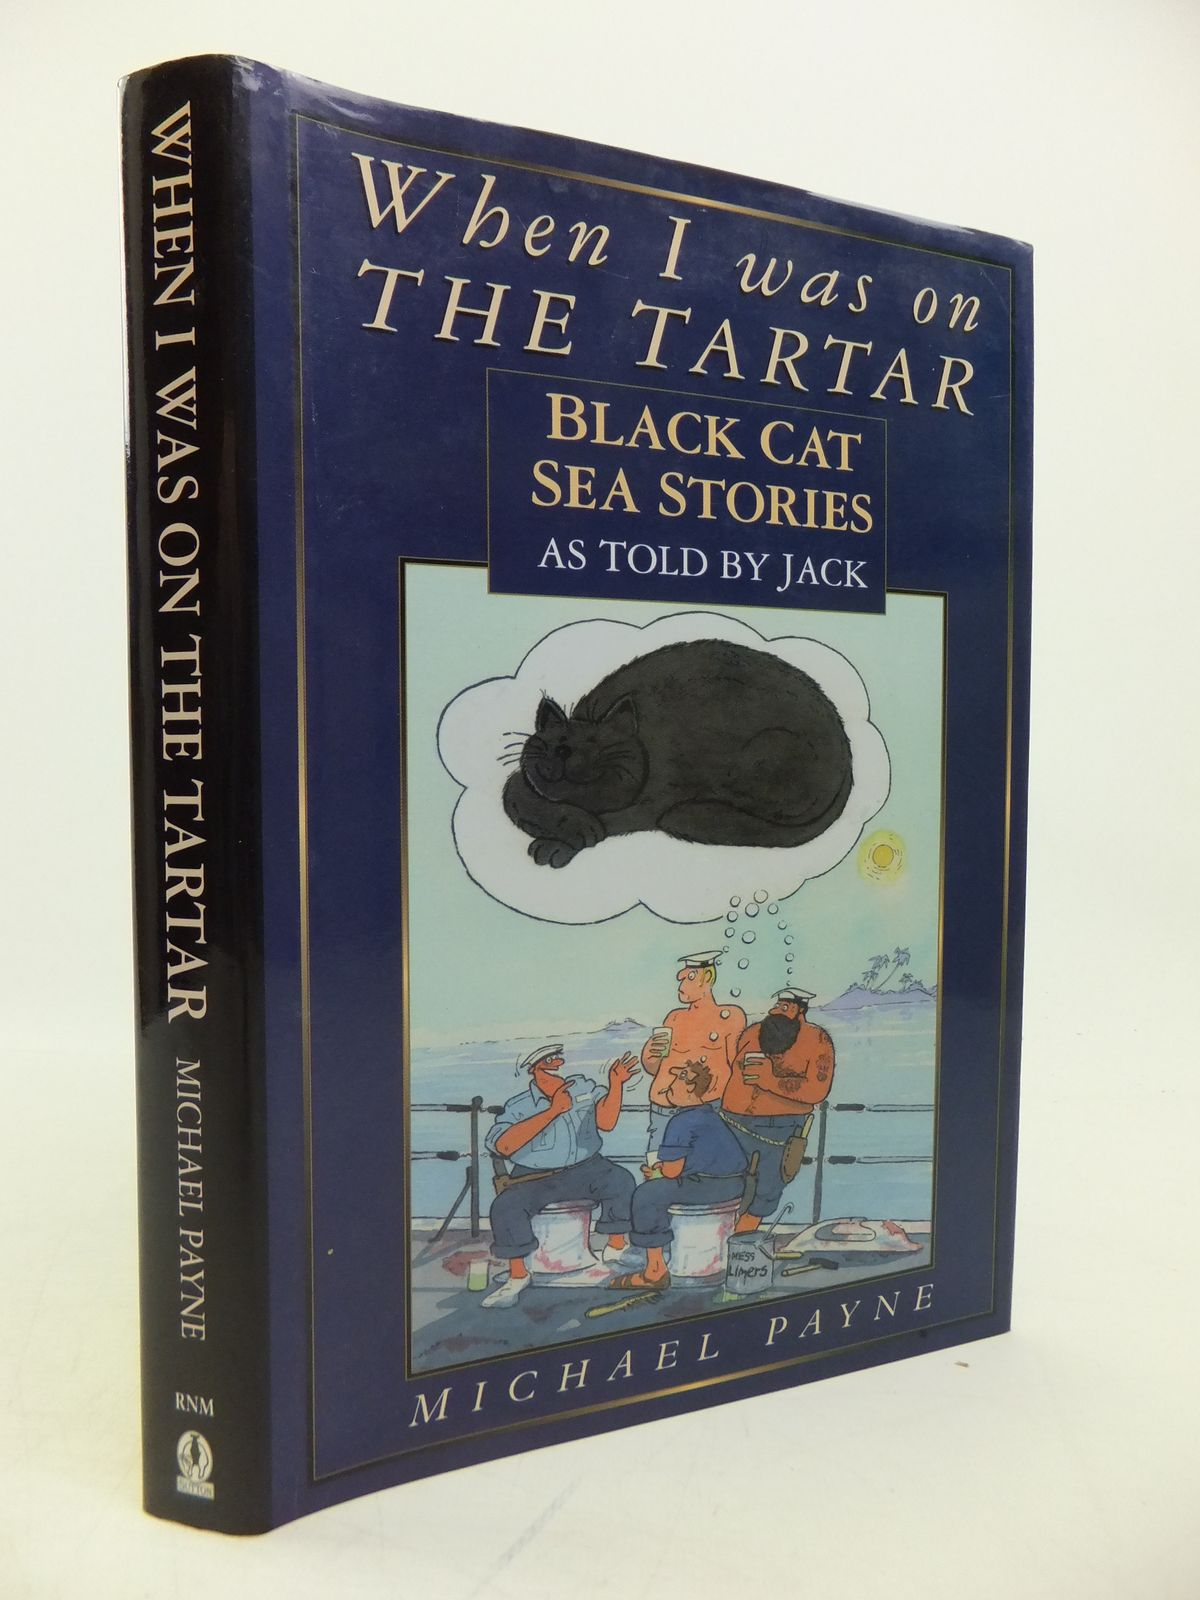 Photo of WHEN I WAS ON THE TARTAR: BLACK CAT SEA STORIES AS TOLD BY JACK written by Payne, Michael published by Royal Naval Museum (STOCK CODE: 1811734)  for sale by Stella & Rose's Books